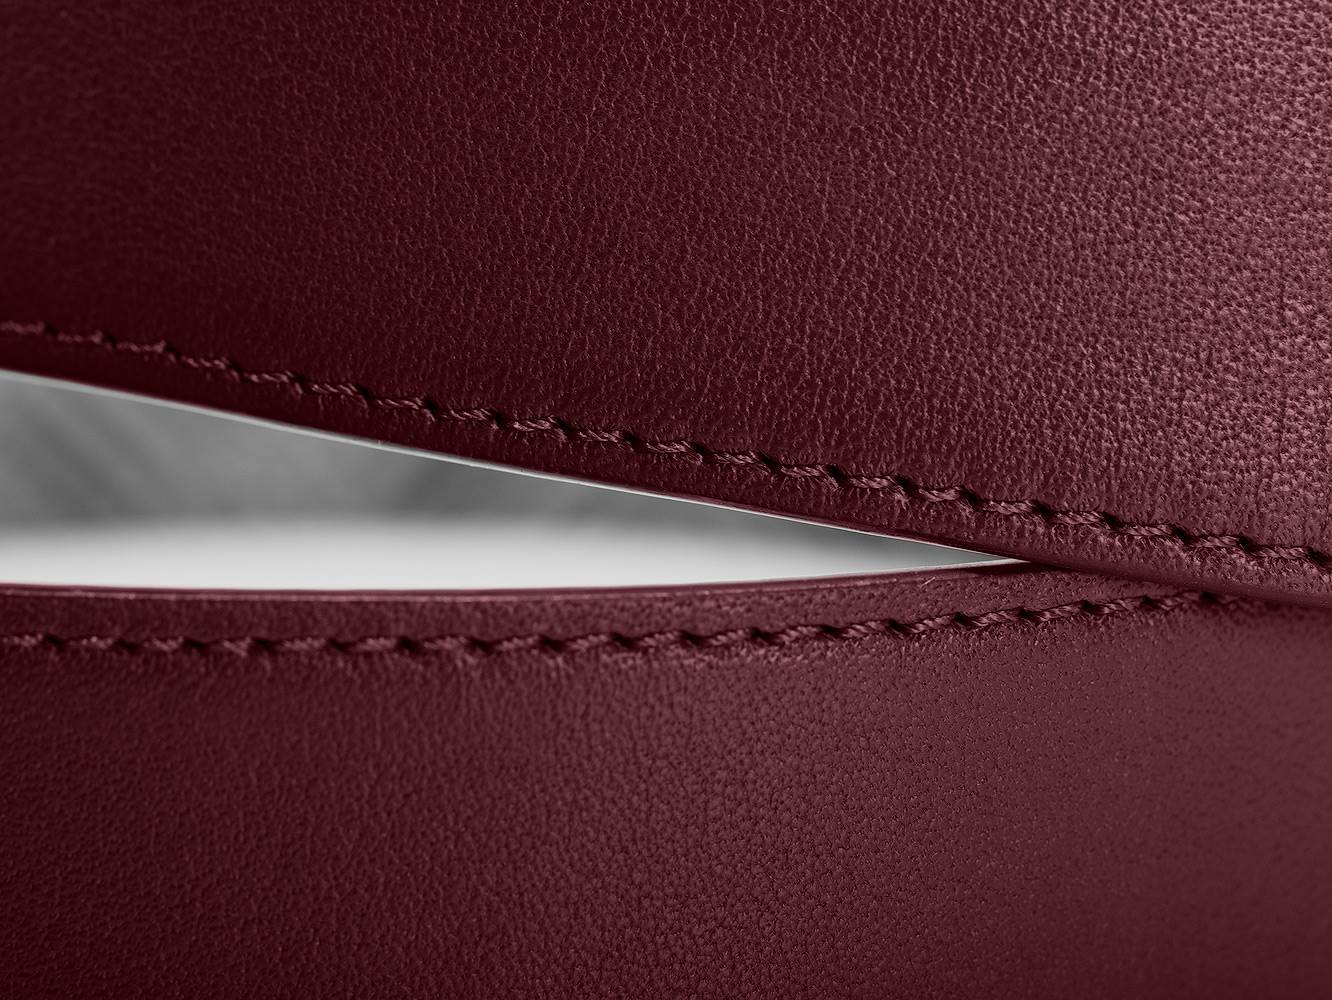 Handmade leather belt detail picture of the stitches in leather belt